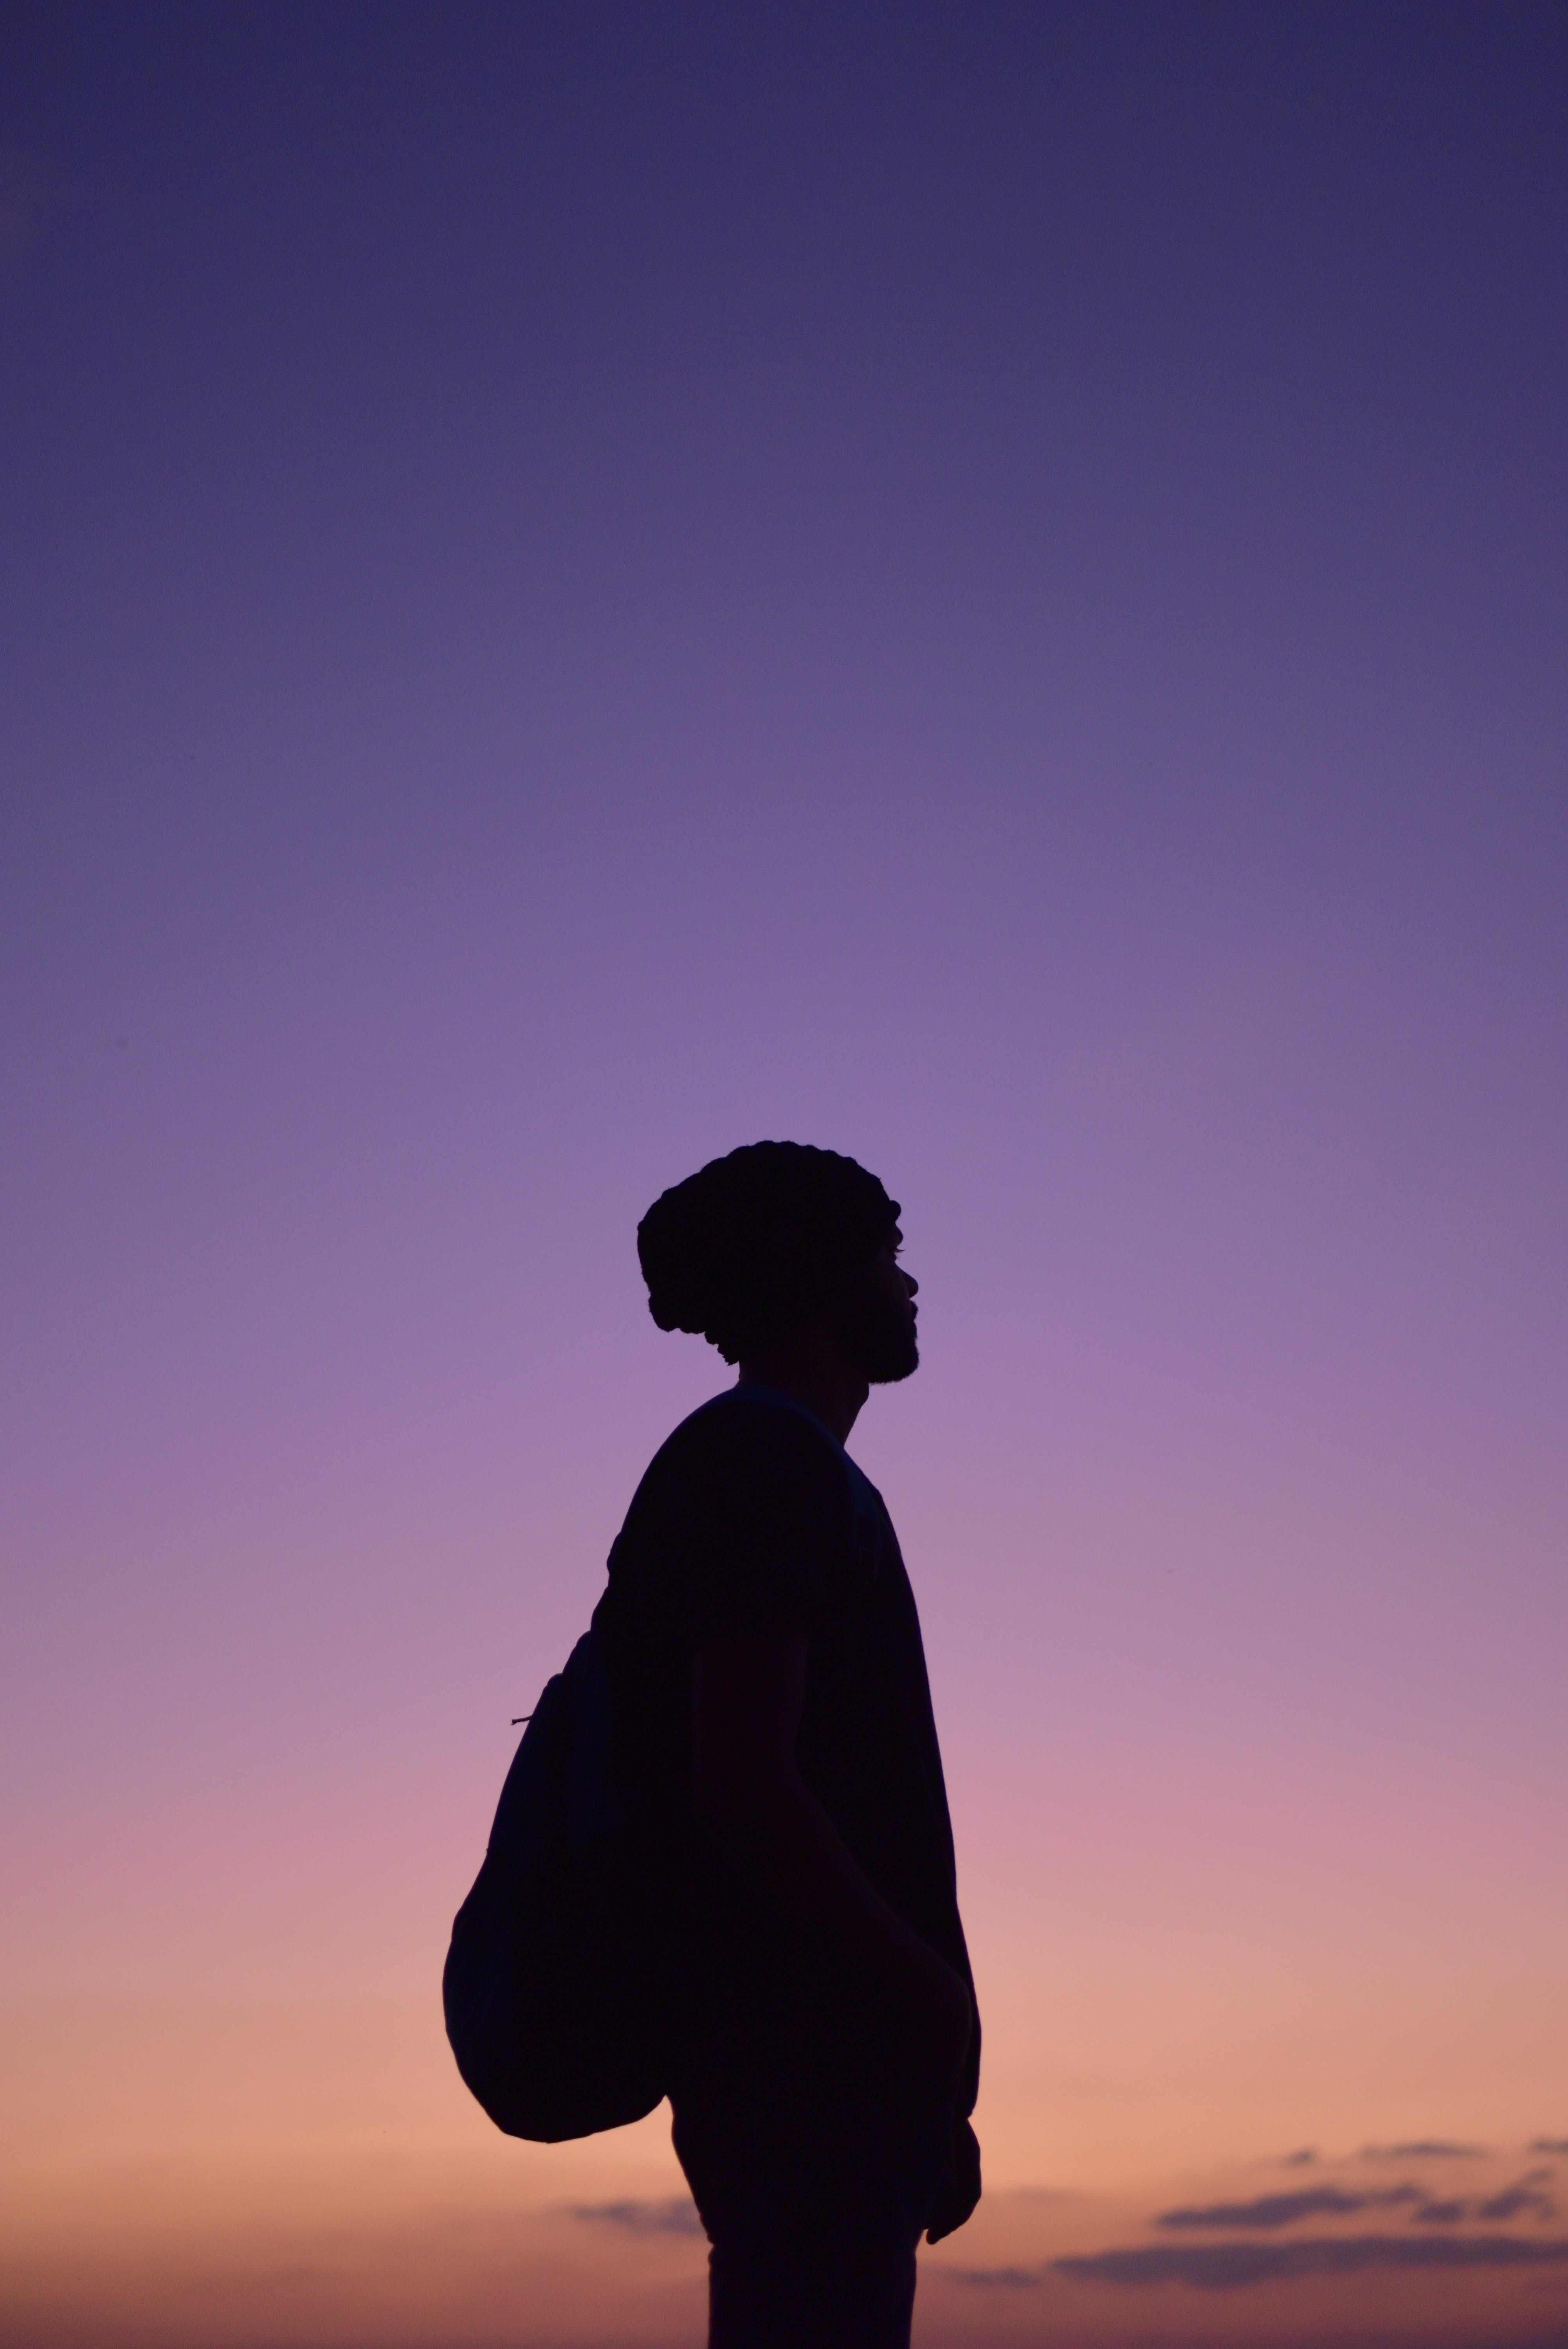 Silhouette Photo of Standing Man